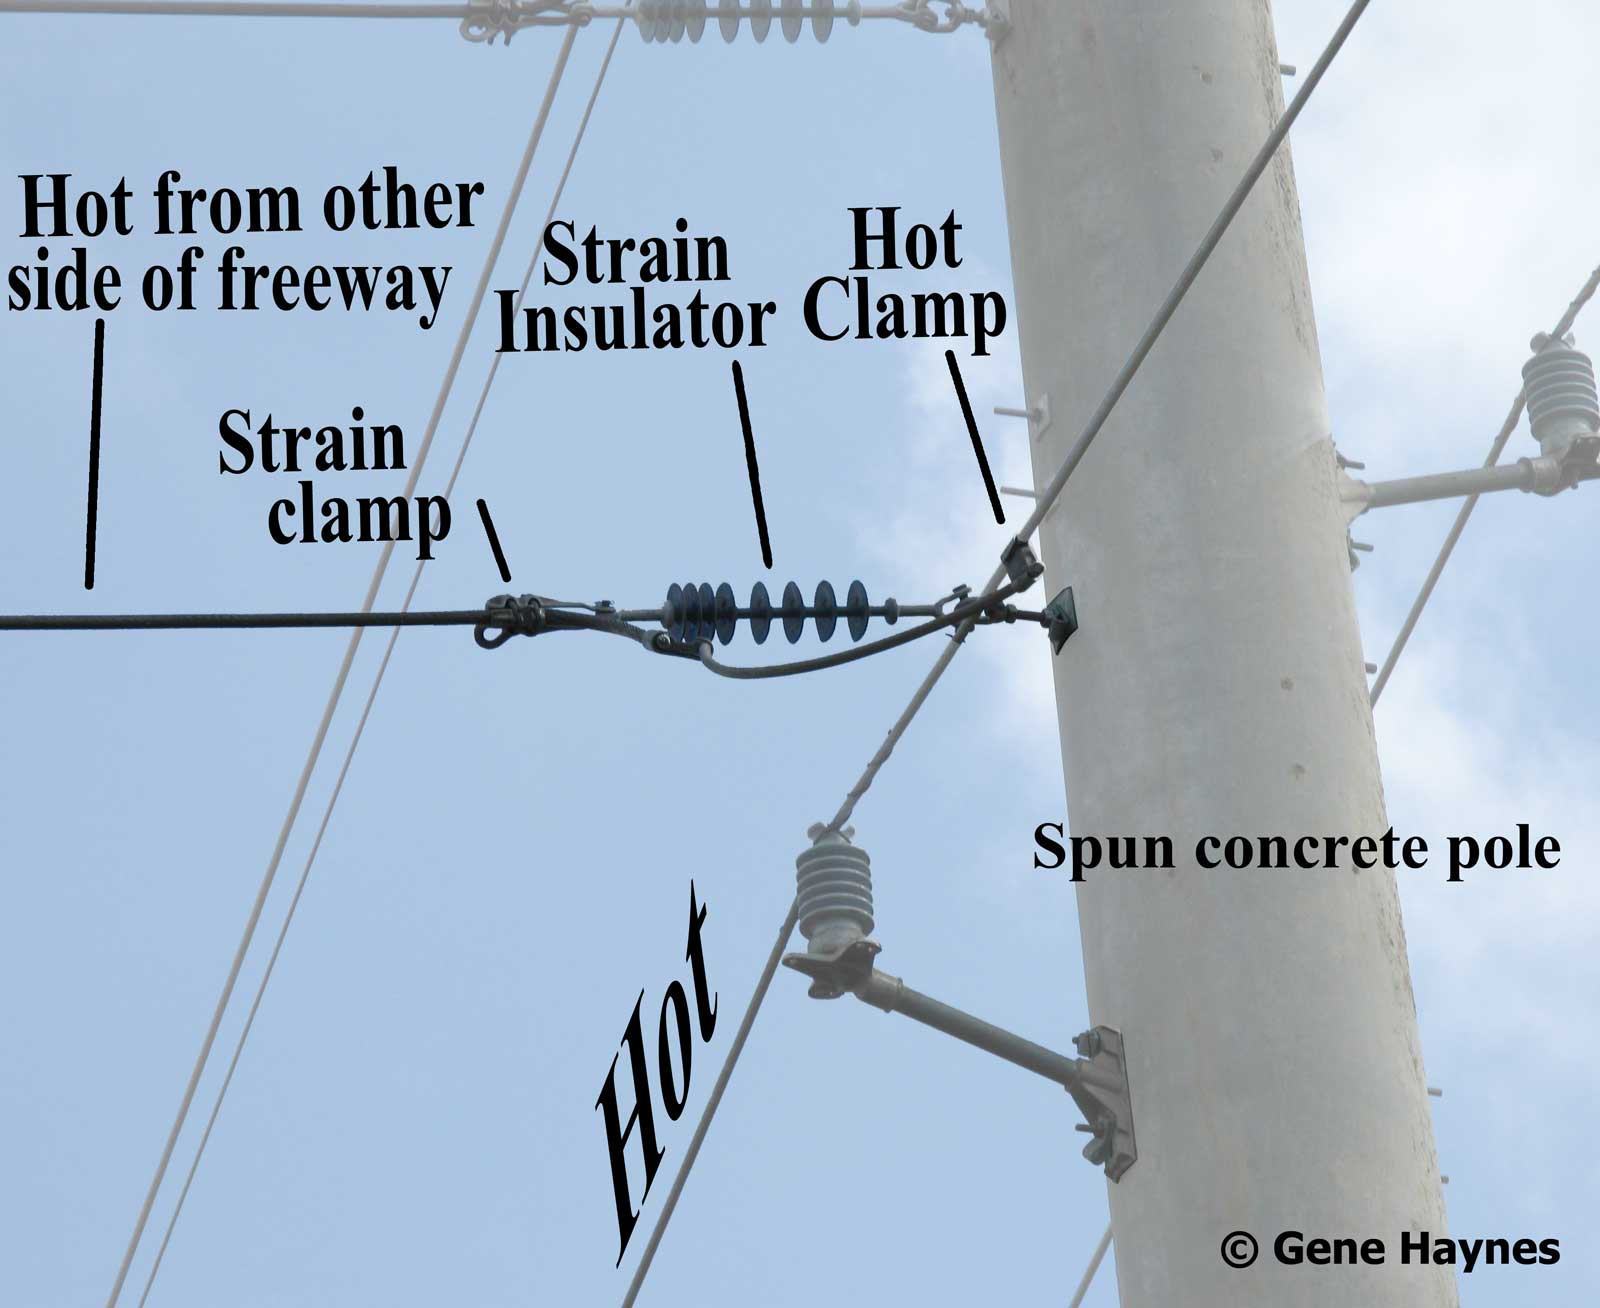 Names of parts on electric pole